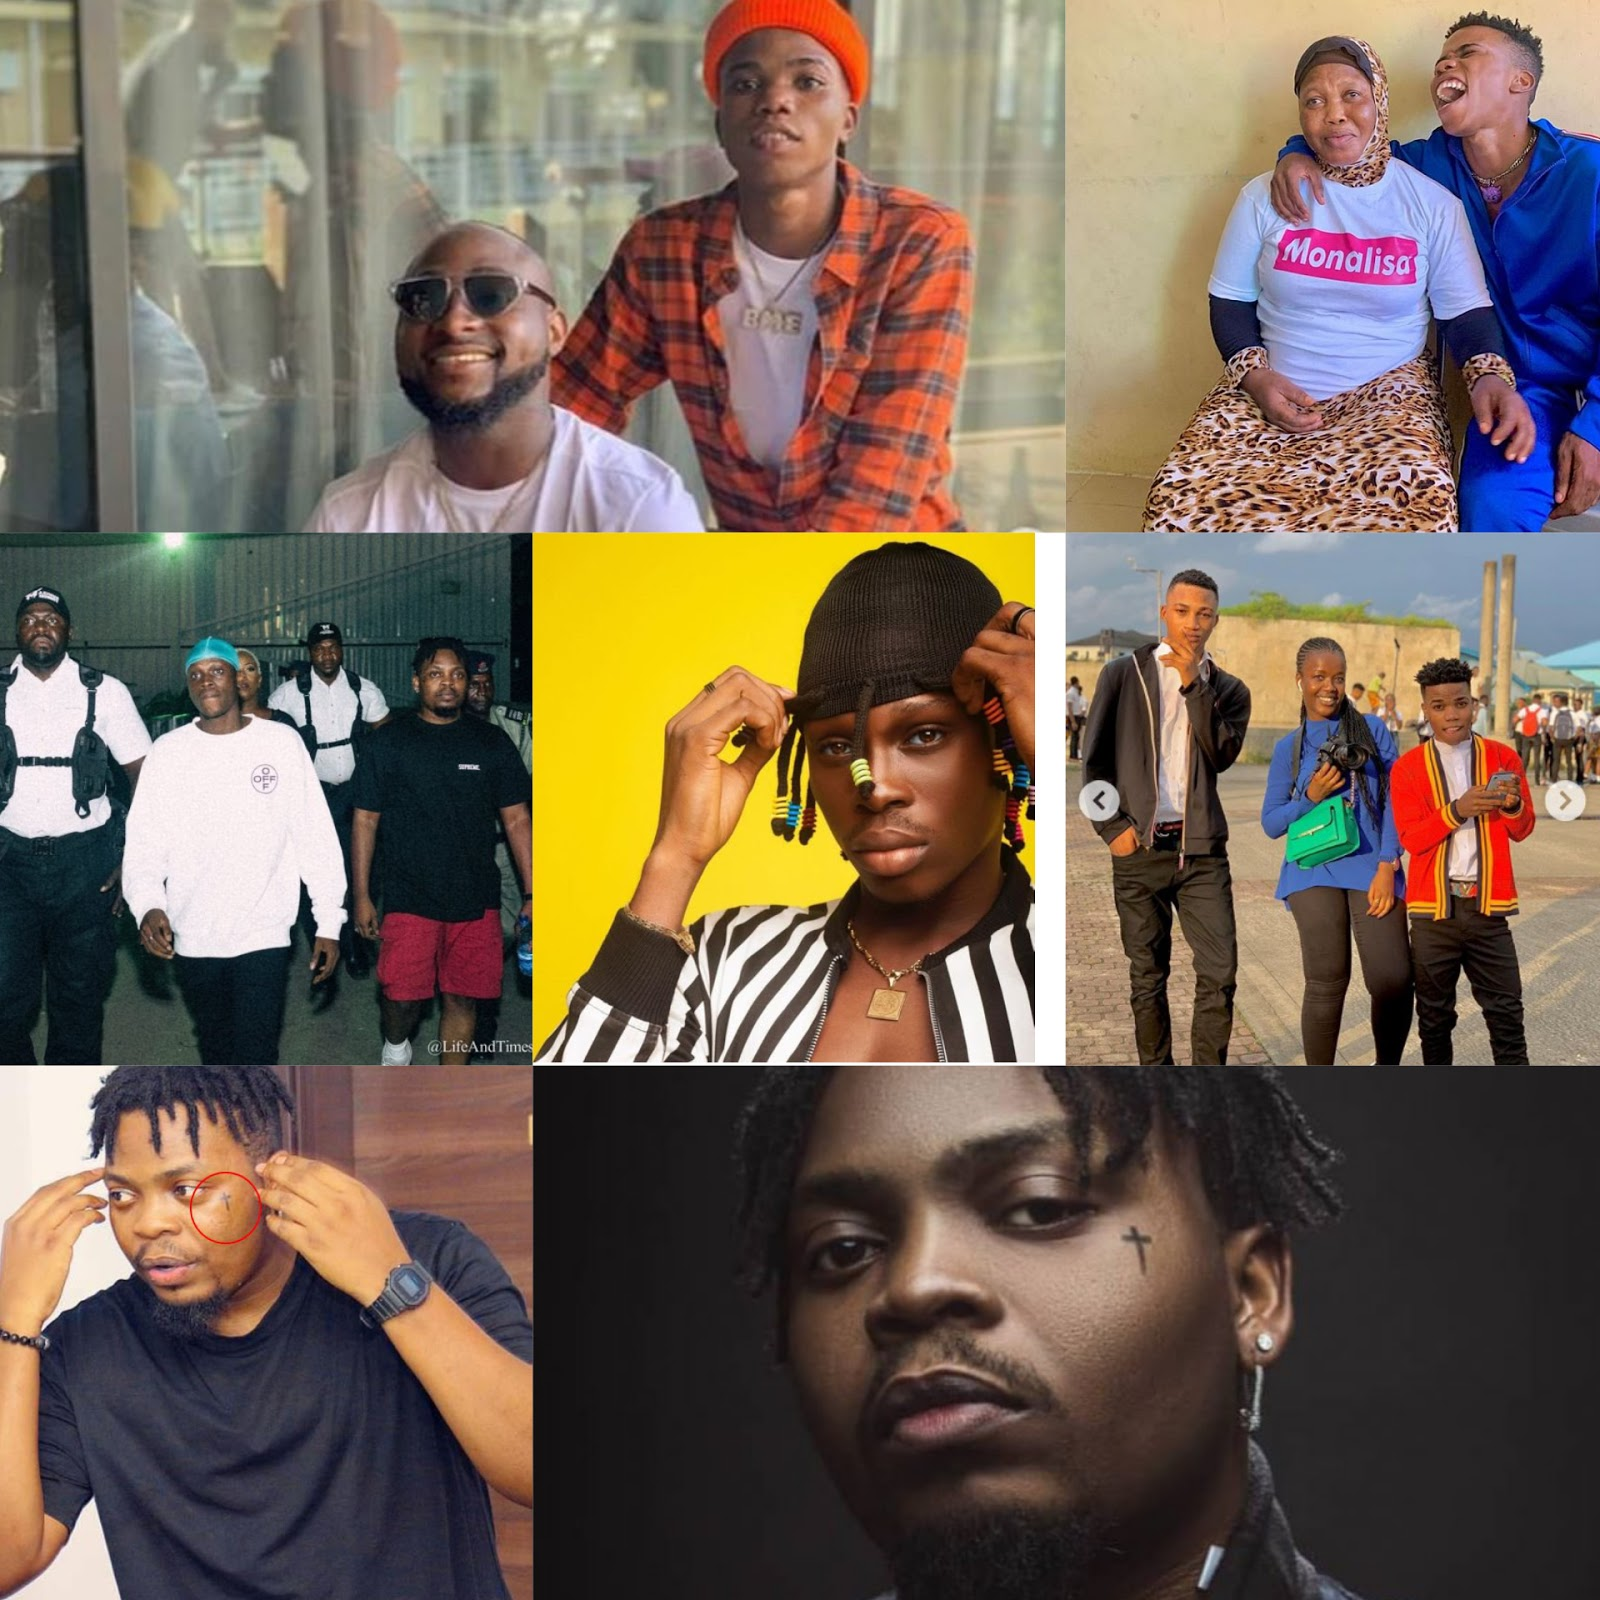 [Gist] Olamide would have invested on lyta, not fireboy - see reasons. #Arewapublisize